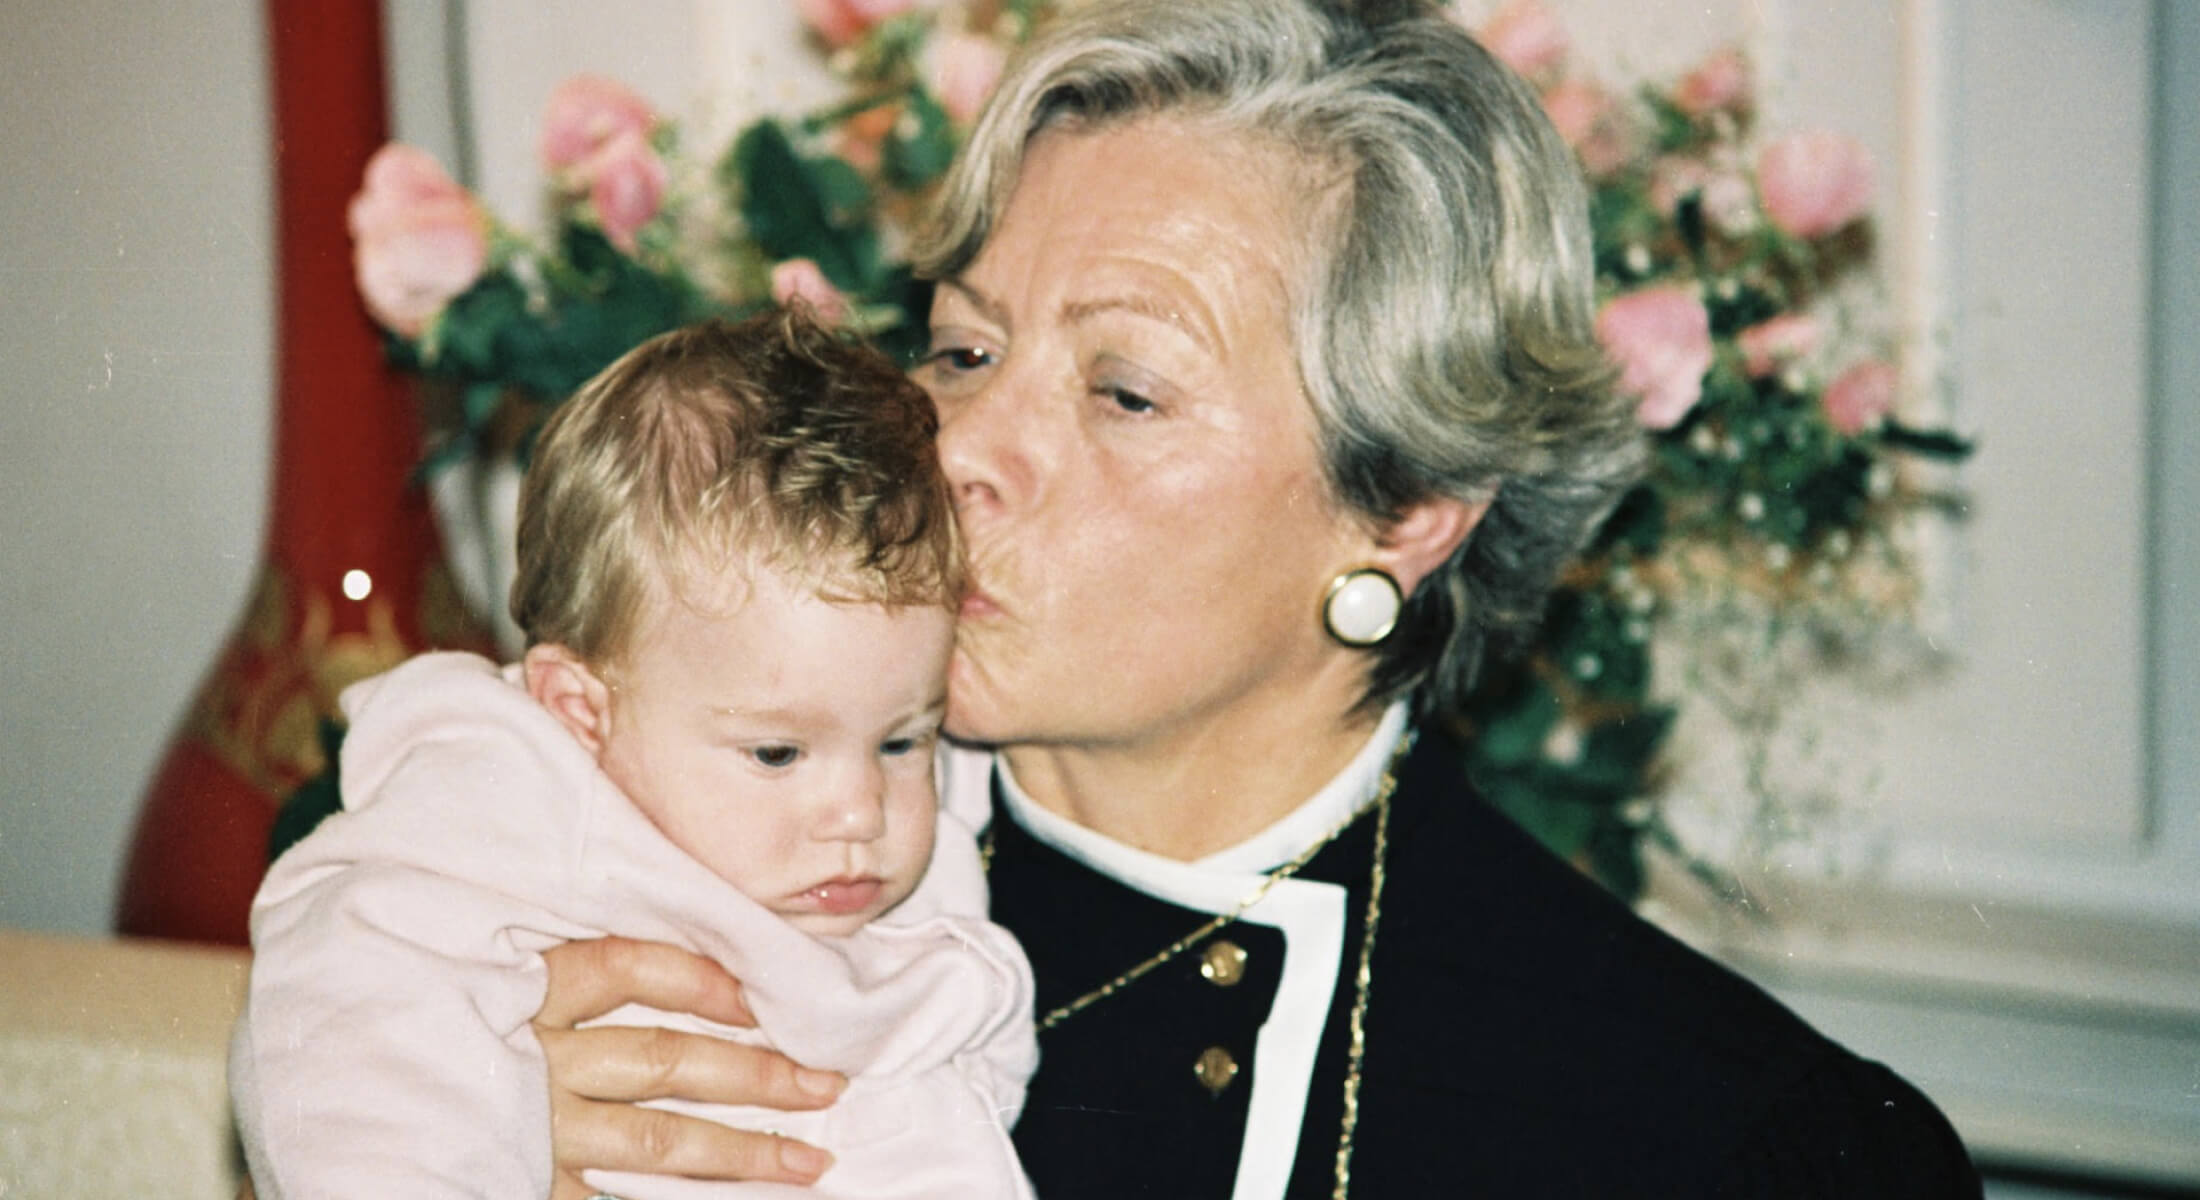 Photo of an elderly woman holding a small baby and kissing it's head